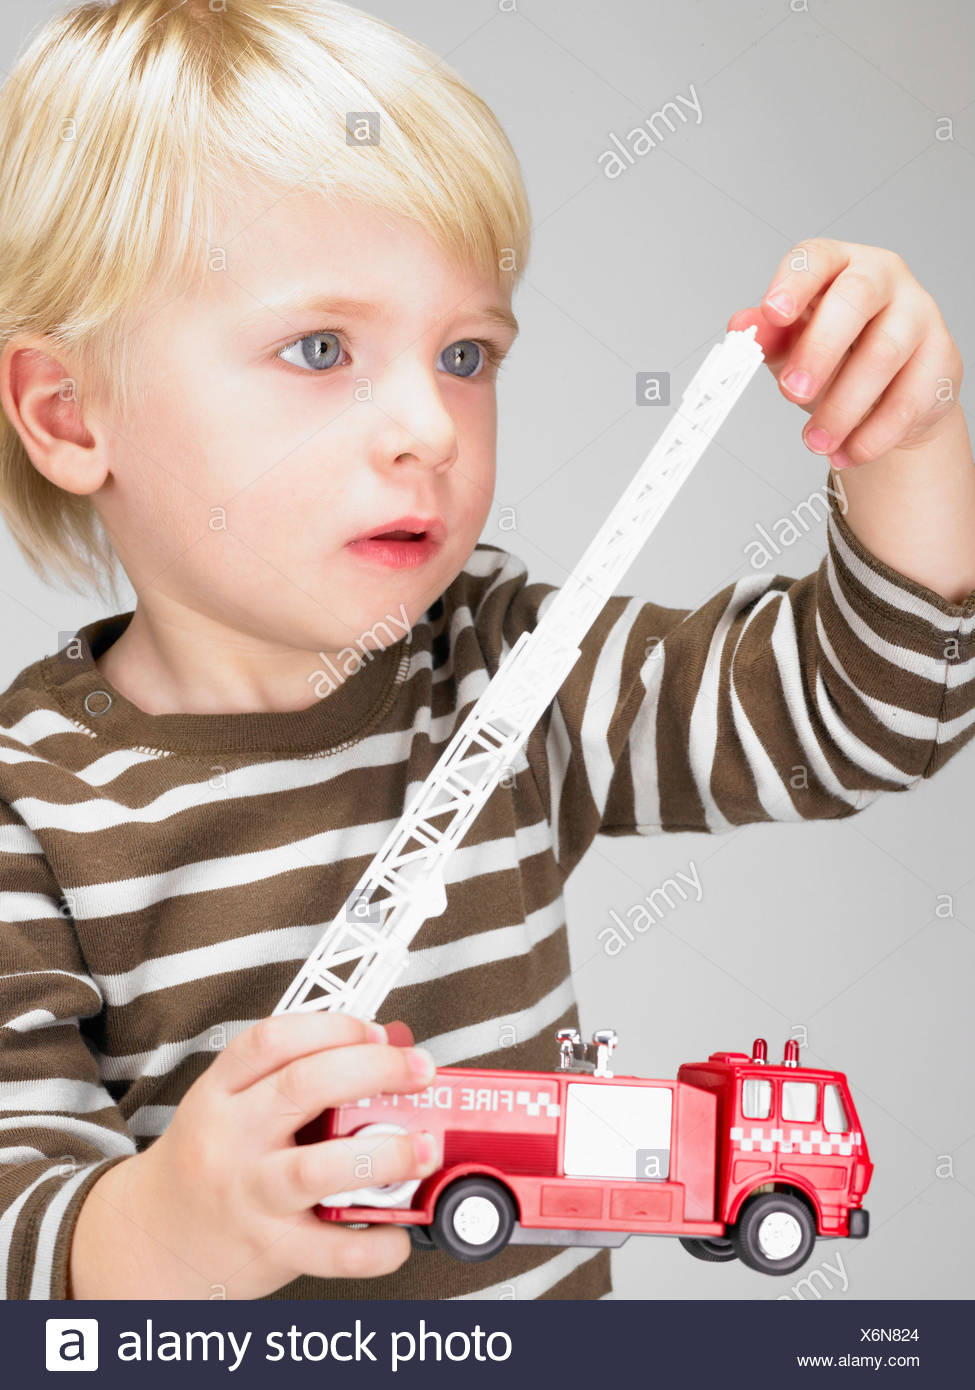 Little Boy Playing With Fire Truck Stock Photo 279521148